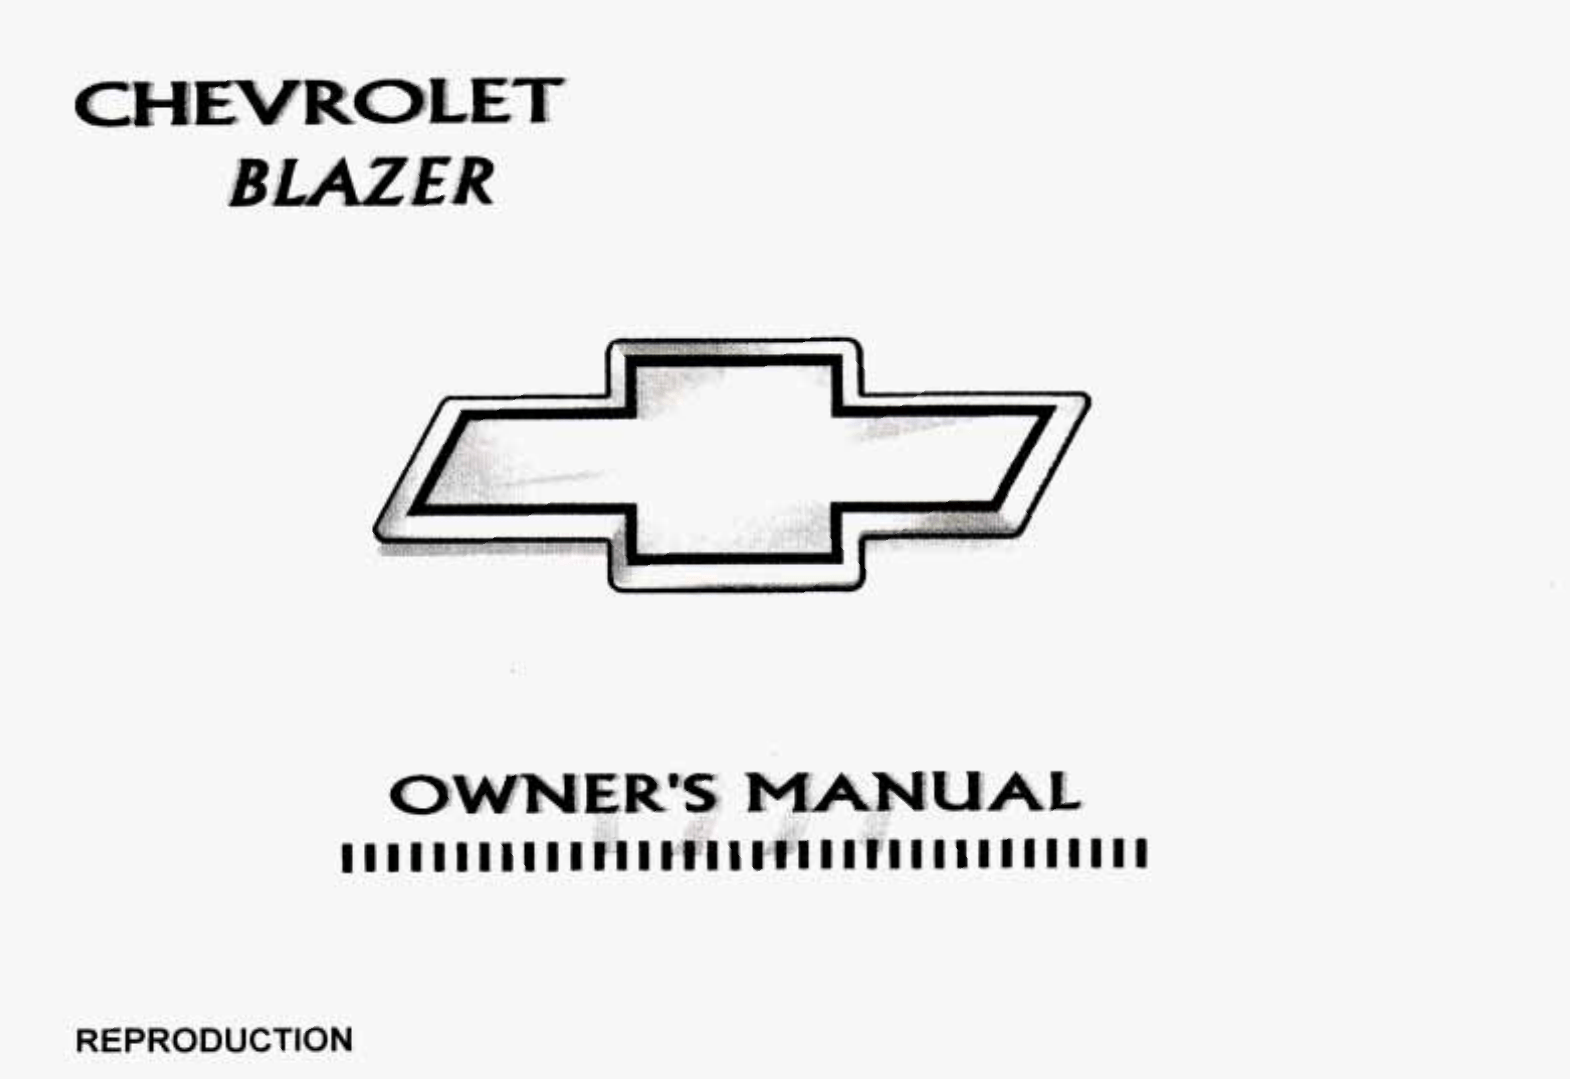 1997 CHEVY BLAZER OWNERS MANUAL PDF